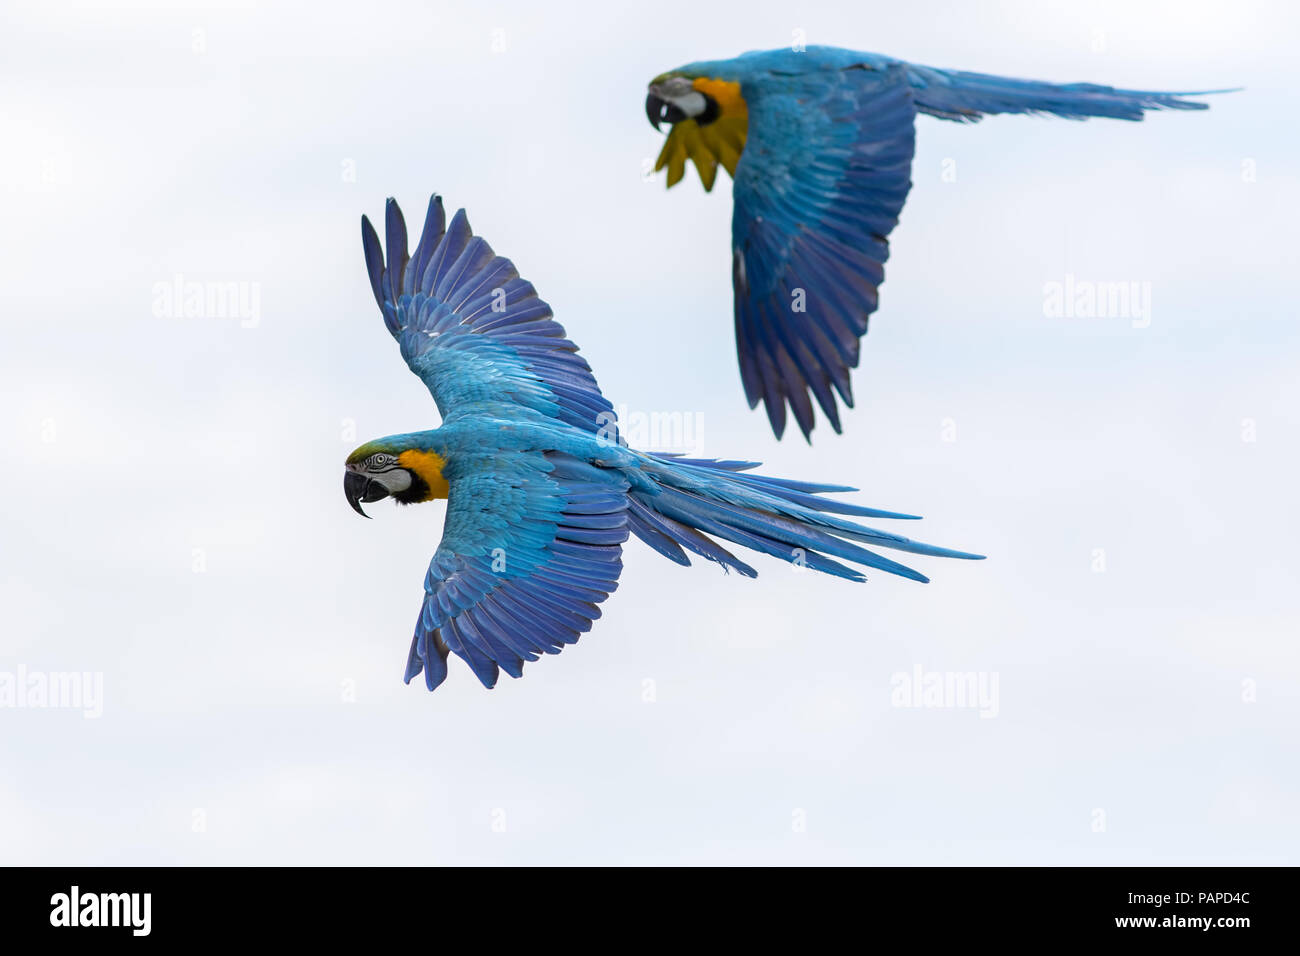 Parrots Flying In The Rainforest - XciteFun.net |Blue Macaw Parrot Flying